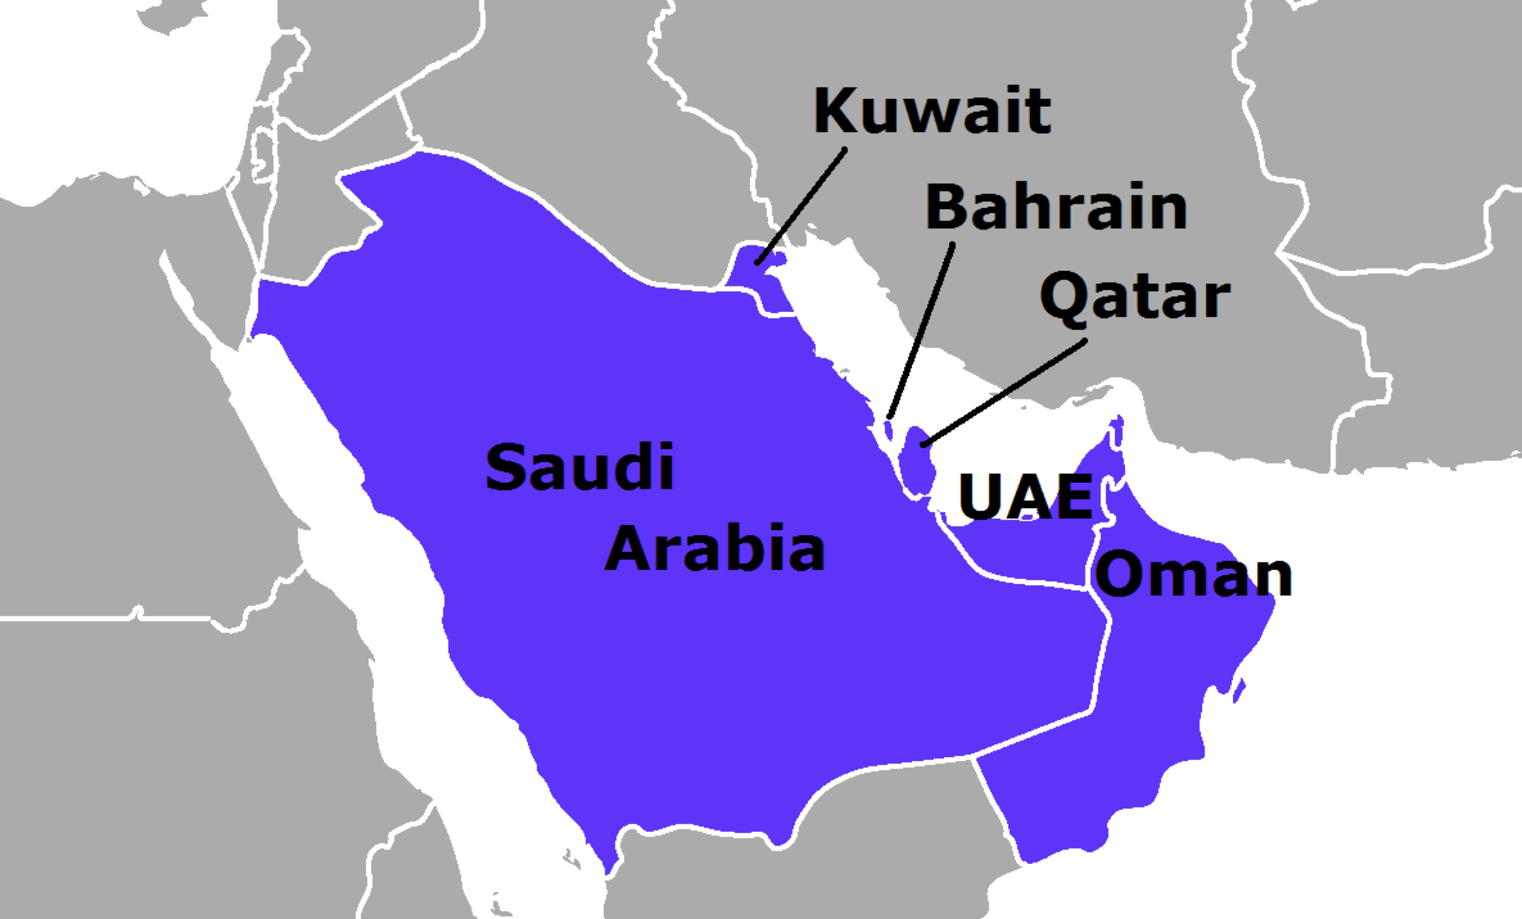 Find products, services & businesses from Saudi Arabia, UAE